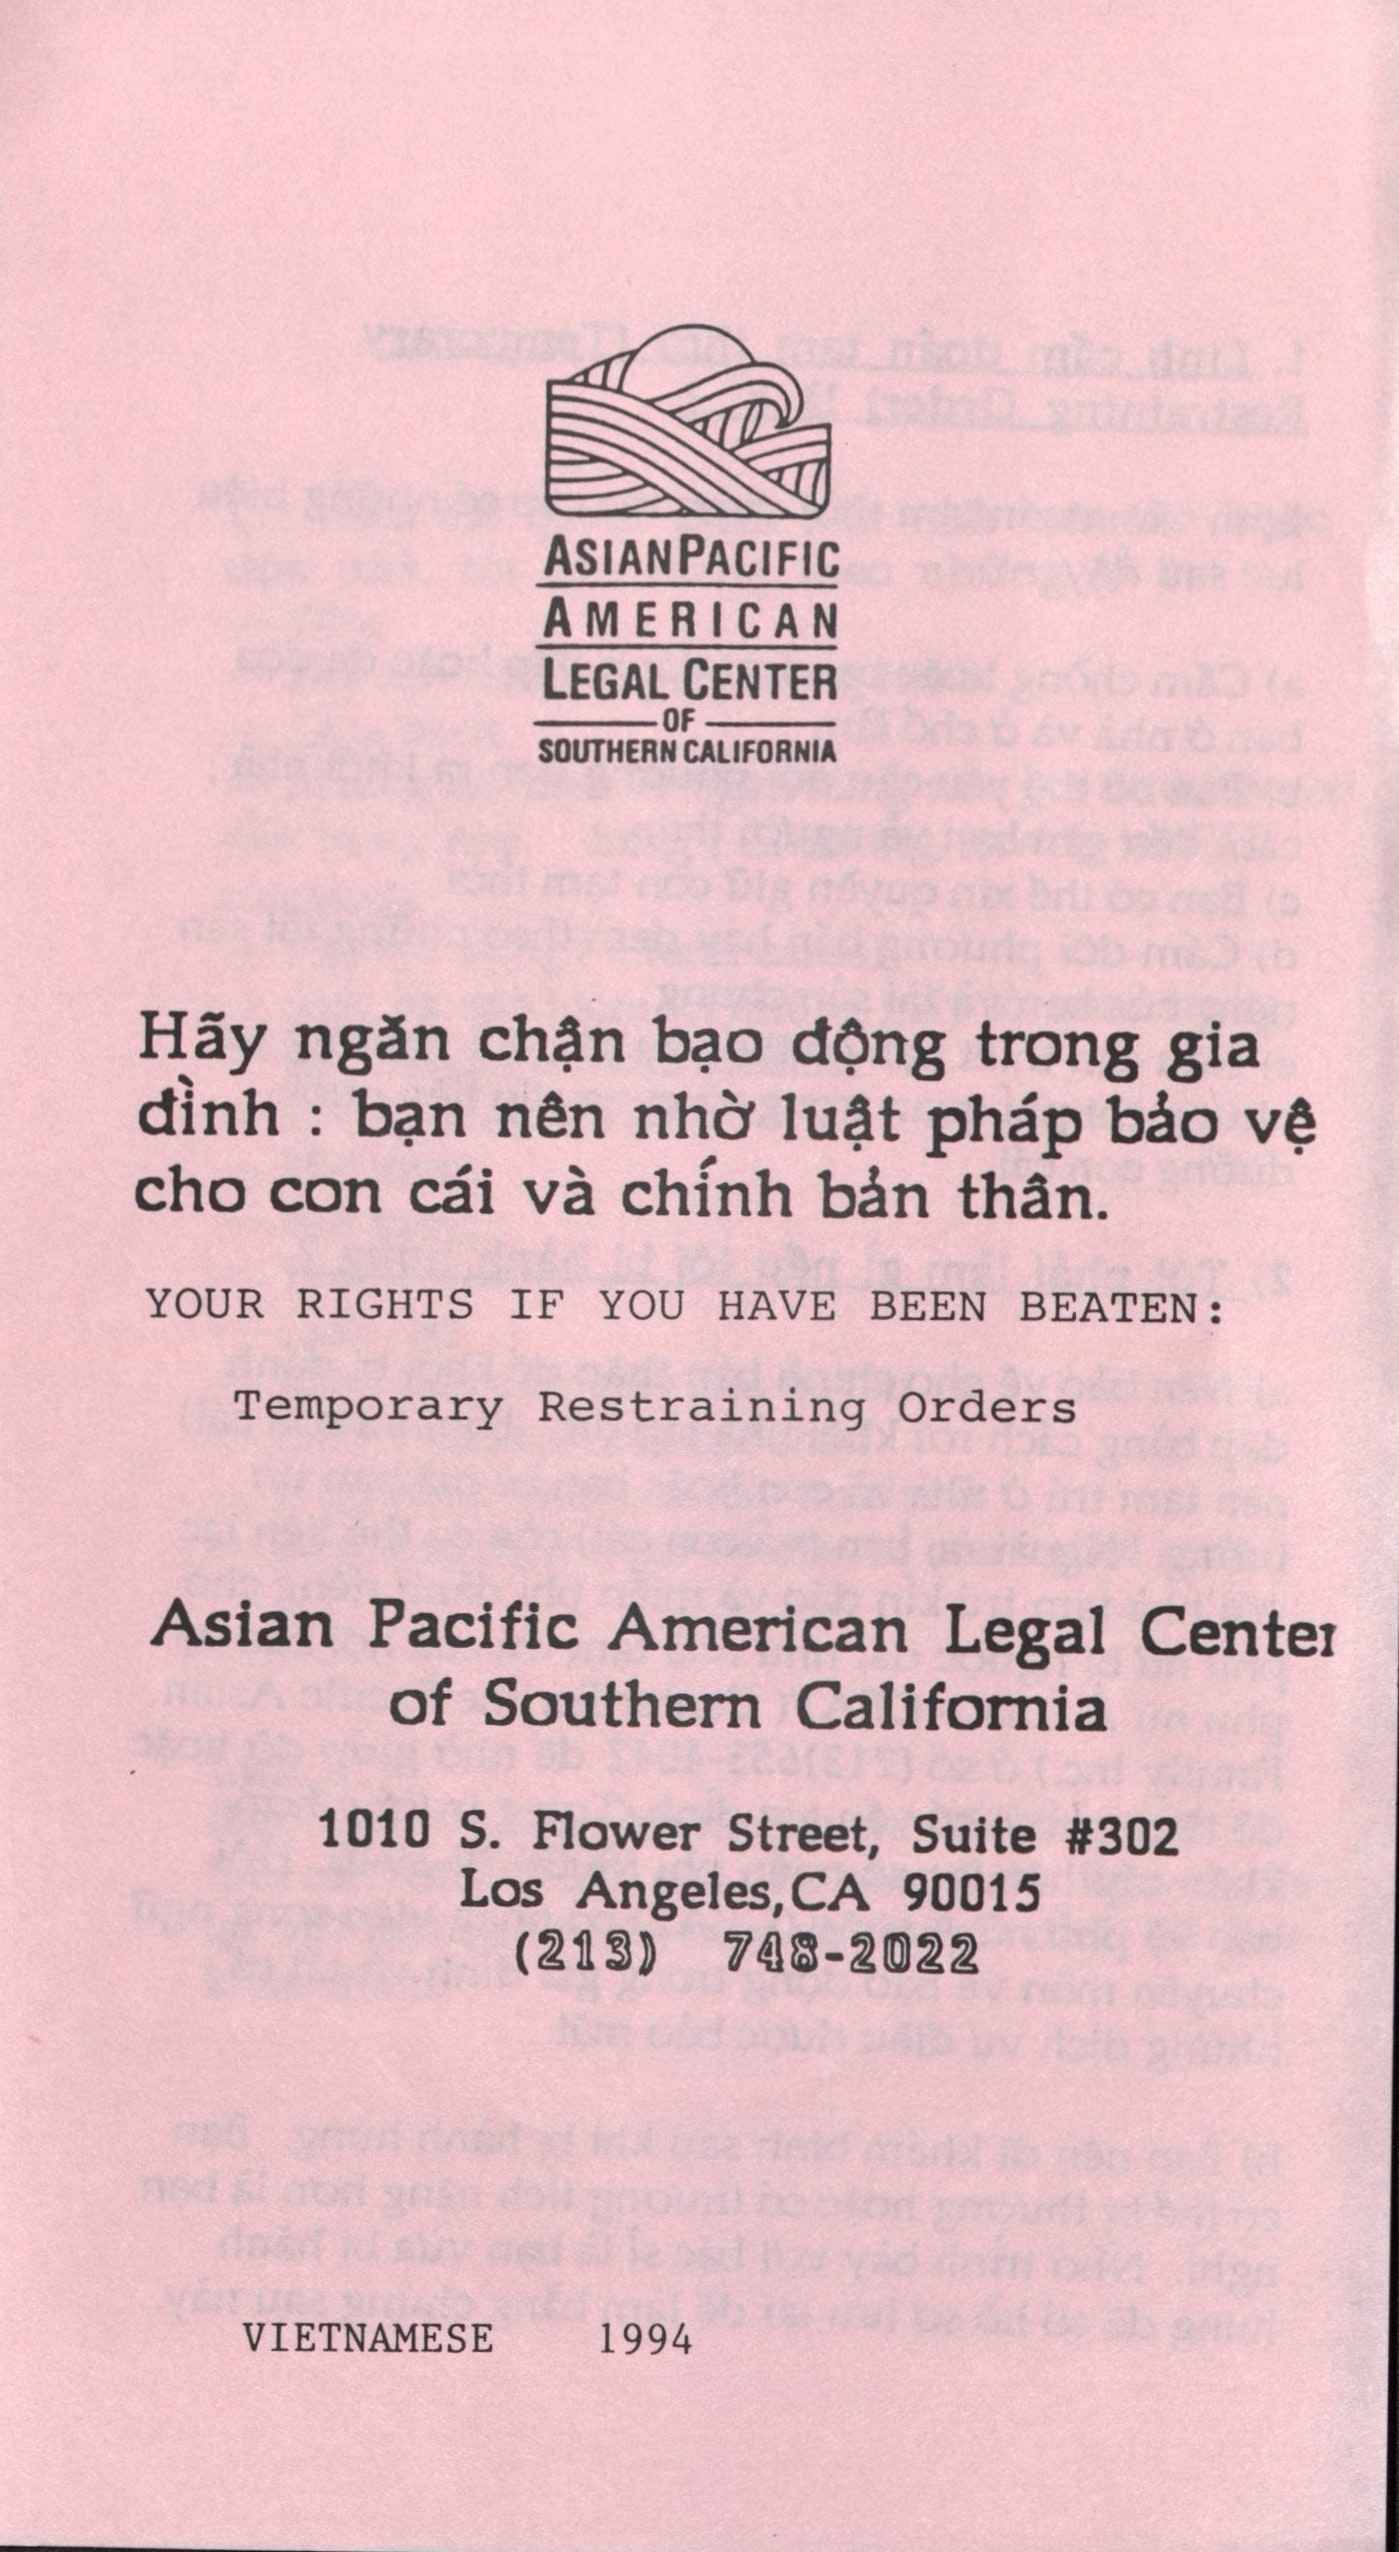 Pamphlet for Vietnamese women suffering from domestic violence